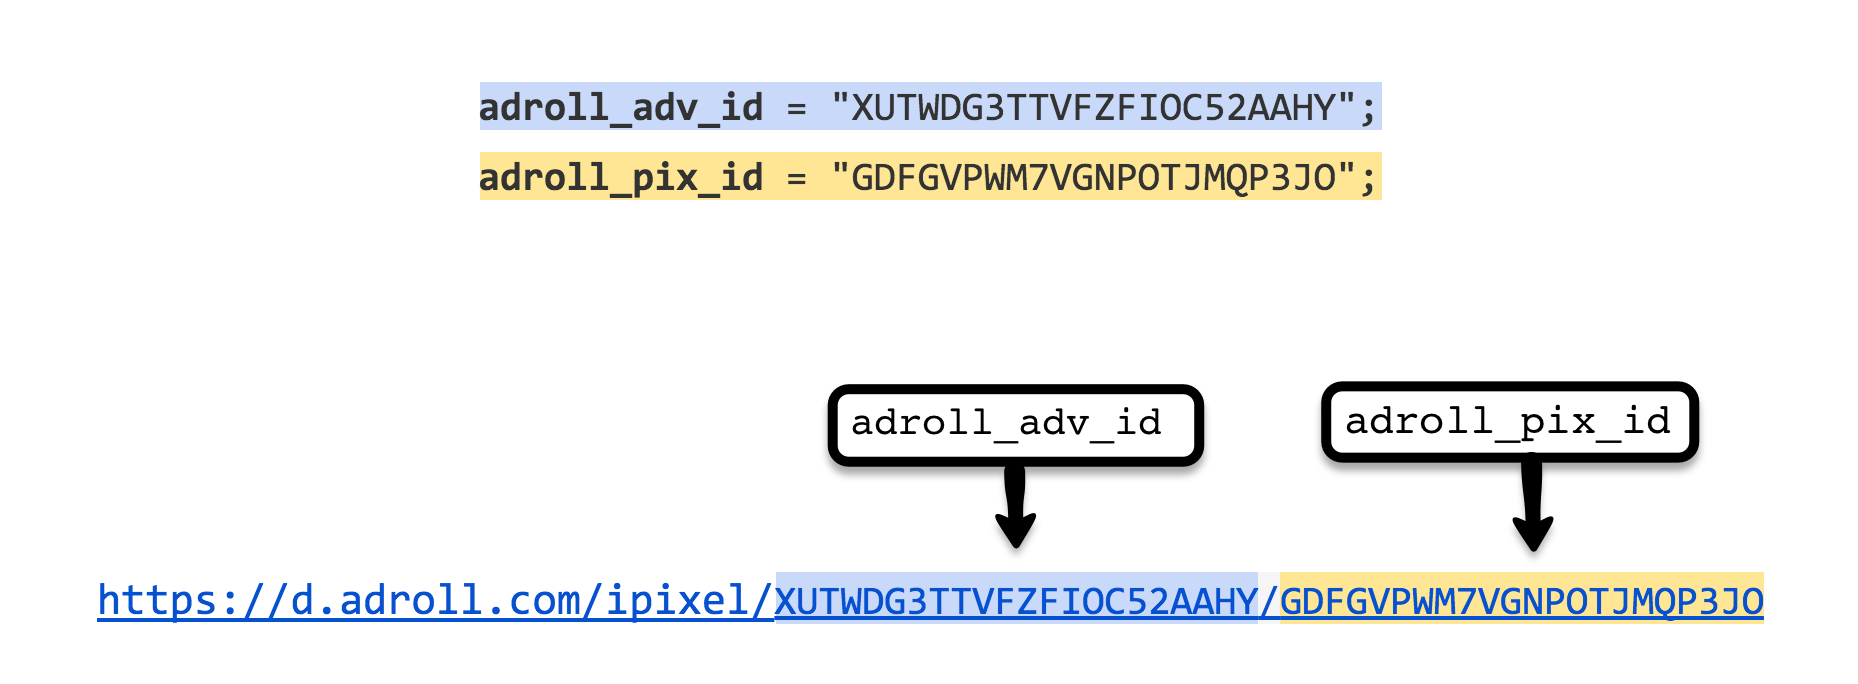 Paste the adroll_adv_id and adroll_pix_id into an empty text document to build your tracking URL.